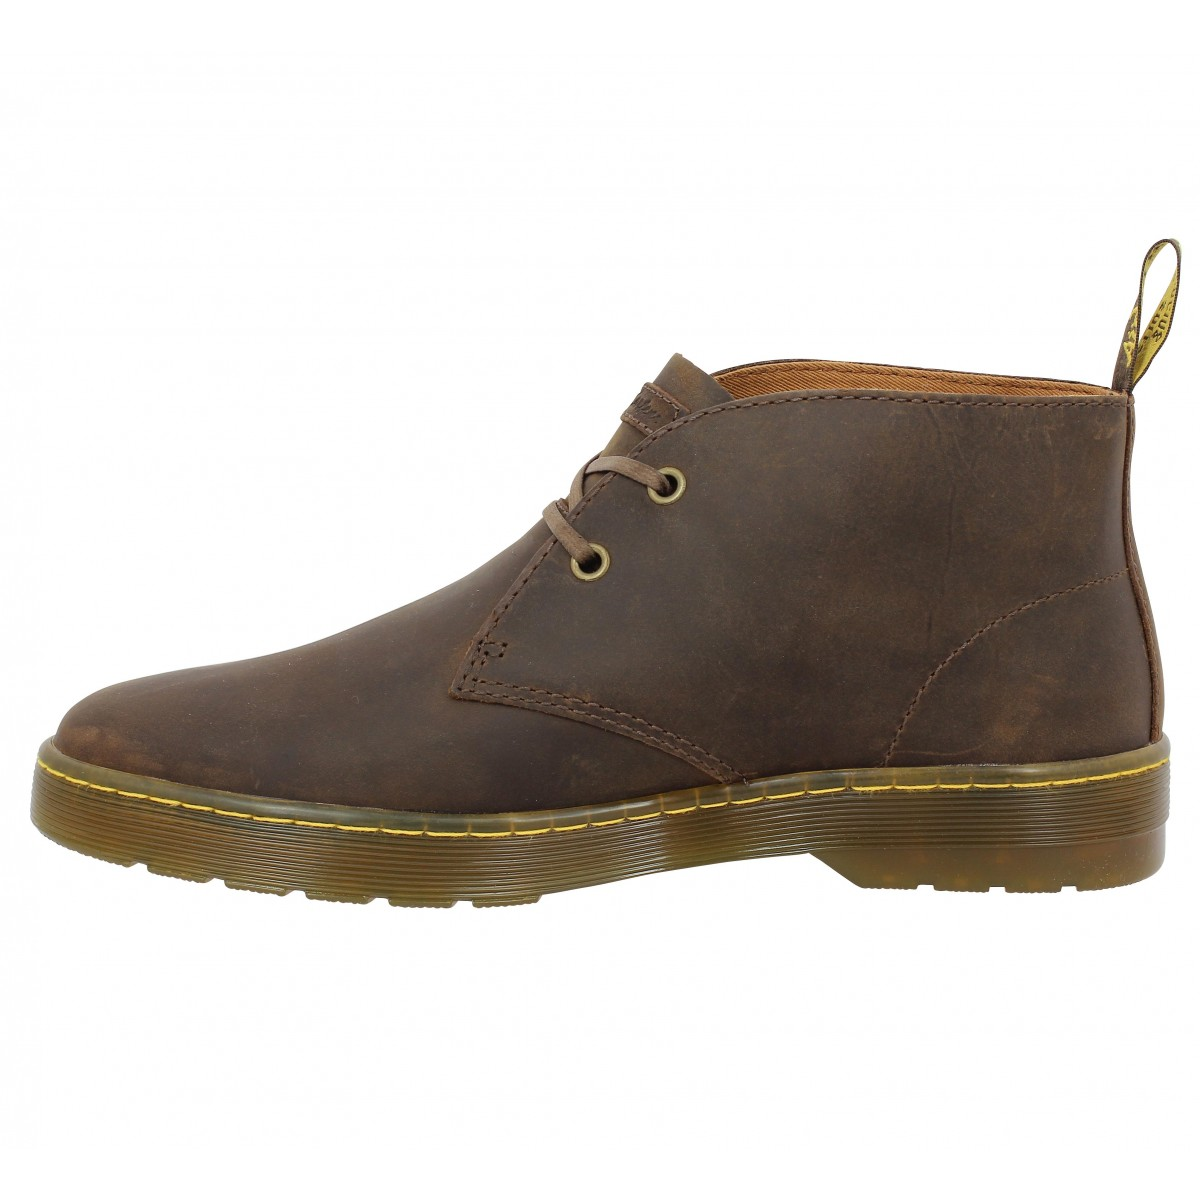 Dr martens cabrillo marron homme | Fanny chaussures